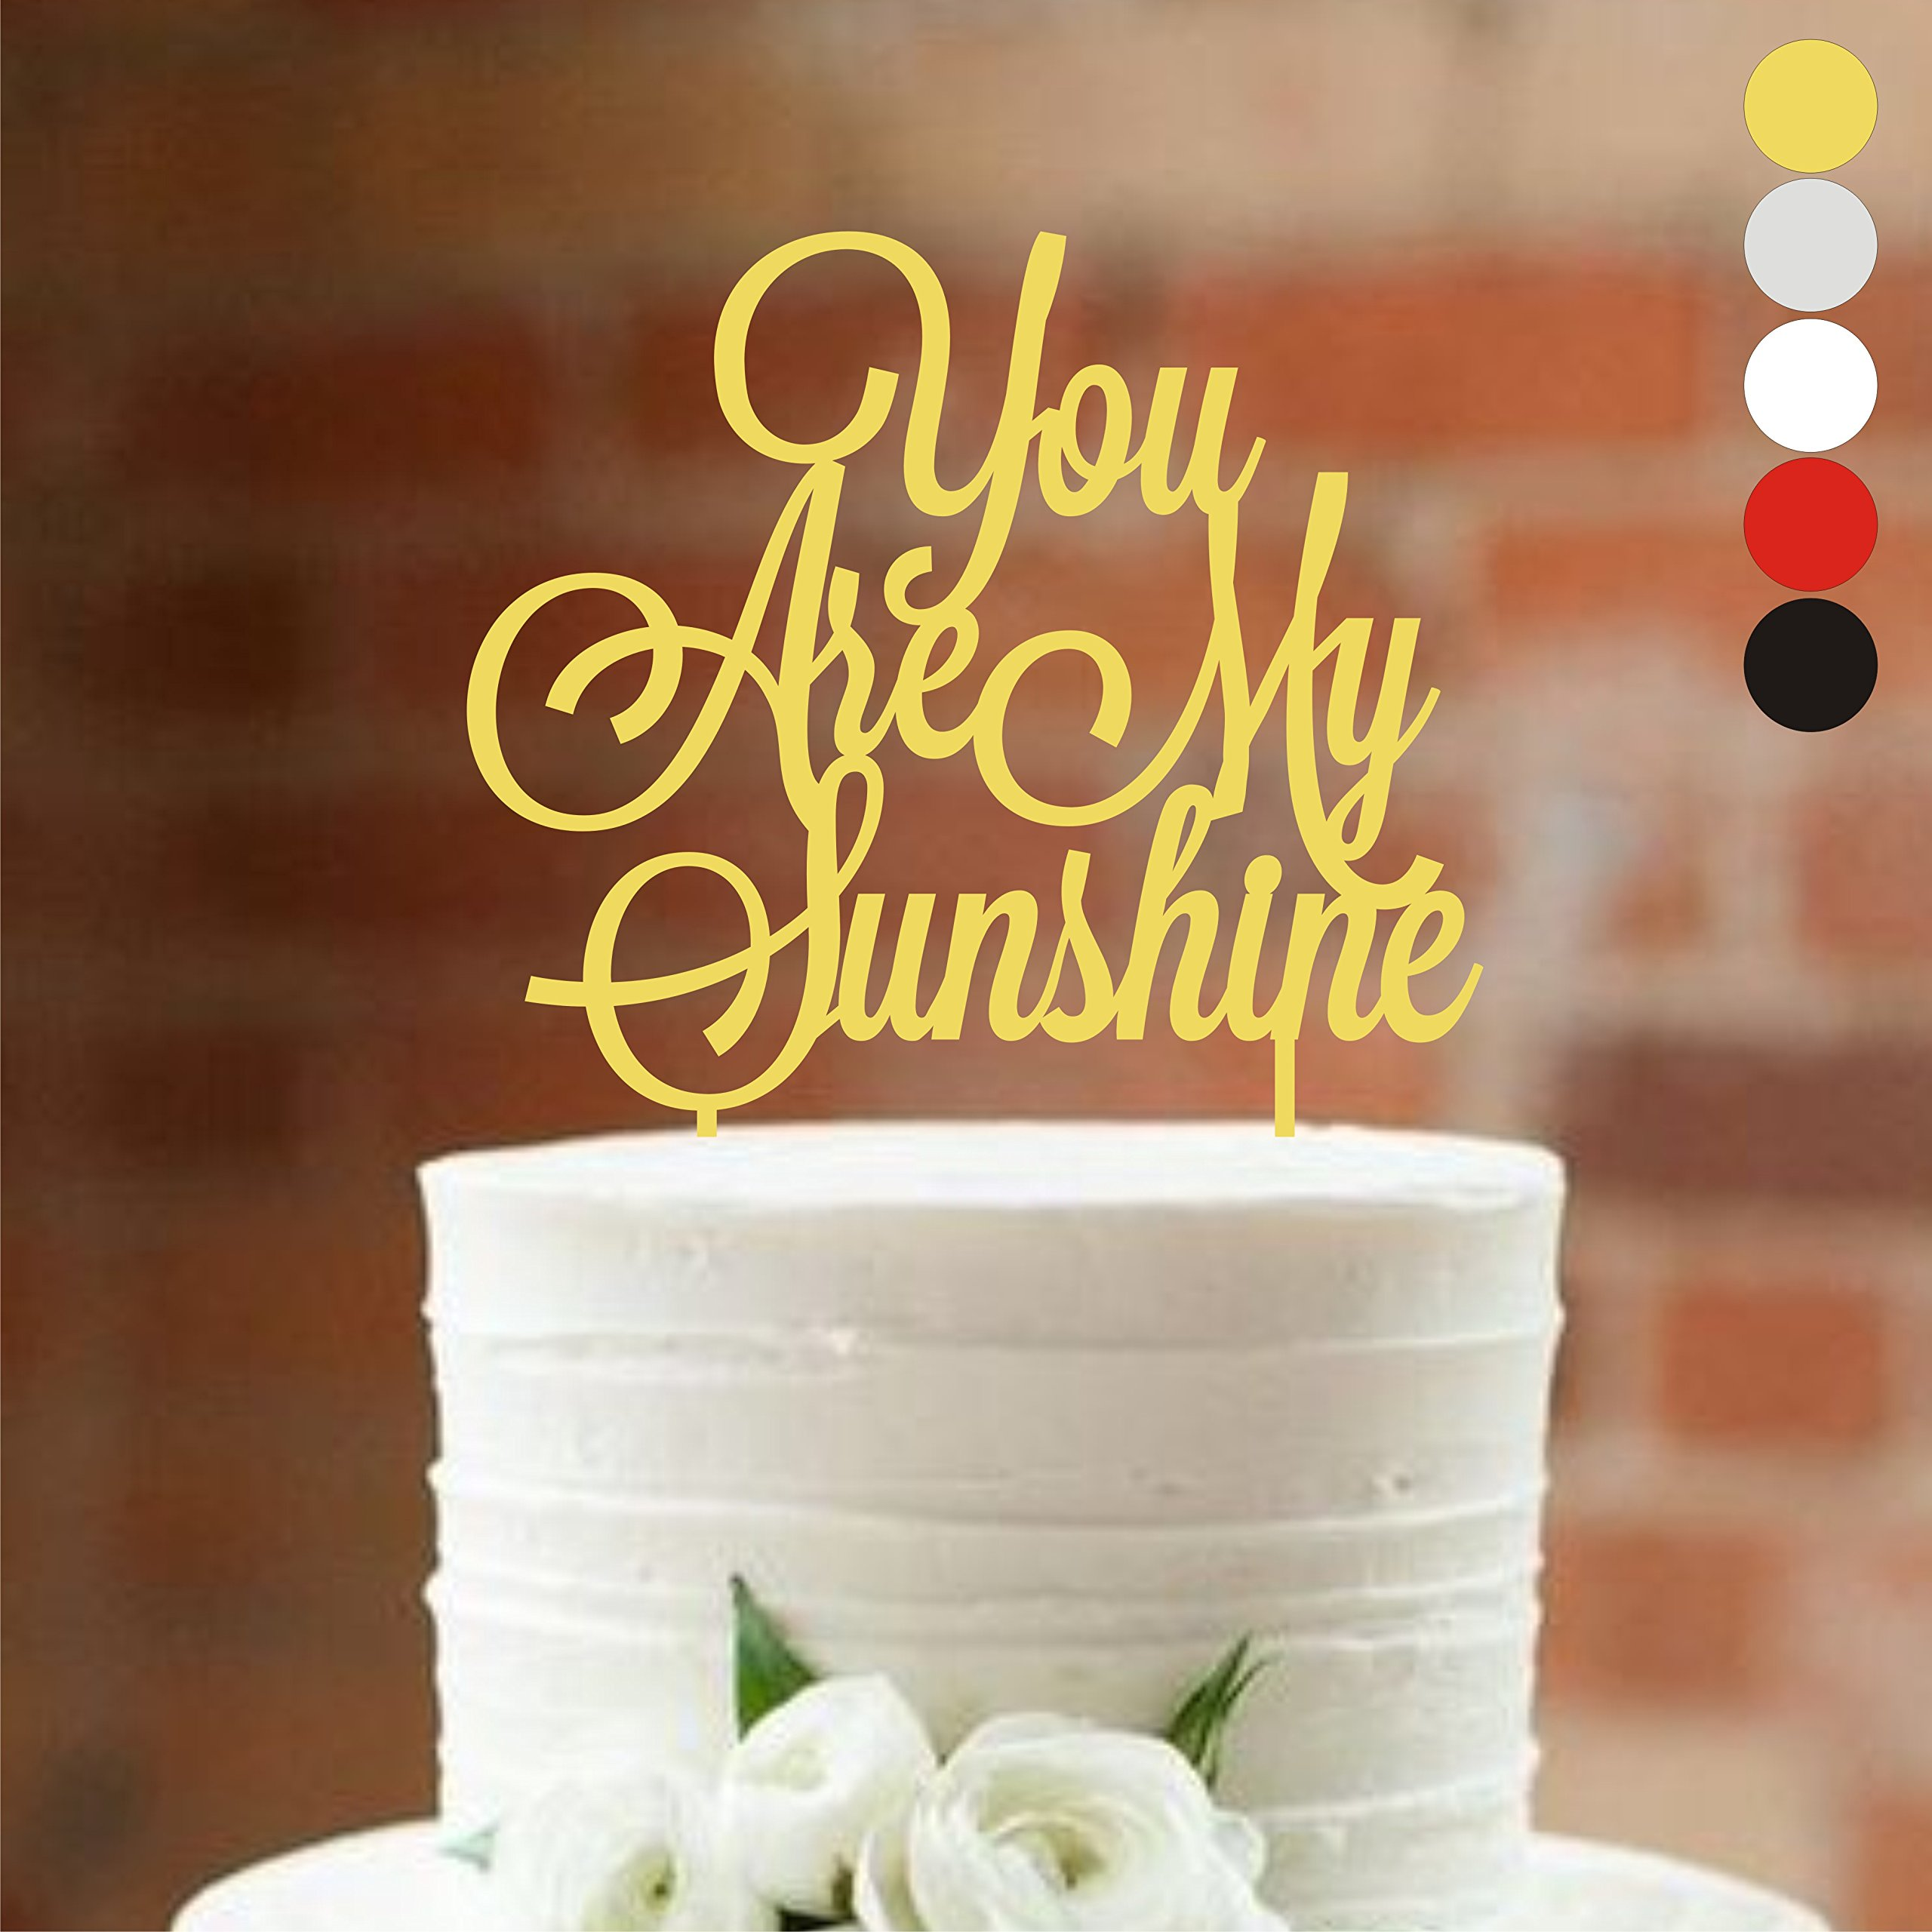 Birthday Cake Topper, You are my sunshine, Birthday Party, Cake toppers, Cake Decorations, Baby cake topper, Sunshine cake topper, Anniversary (width 5'', gold)